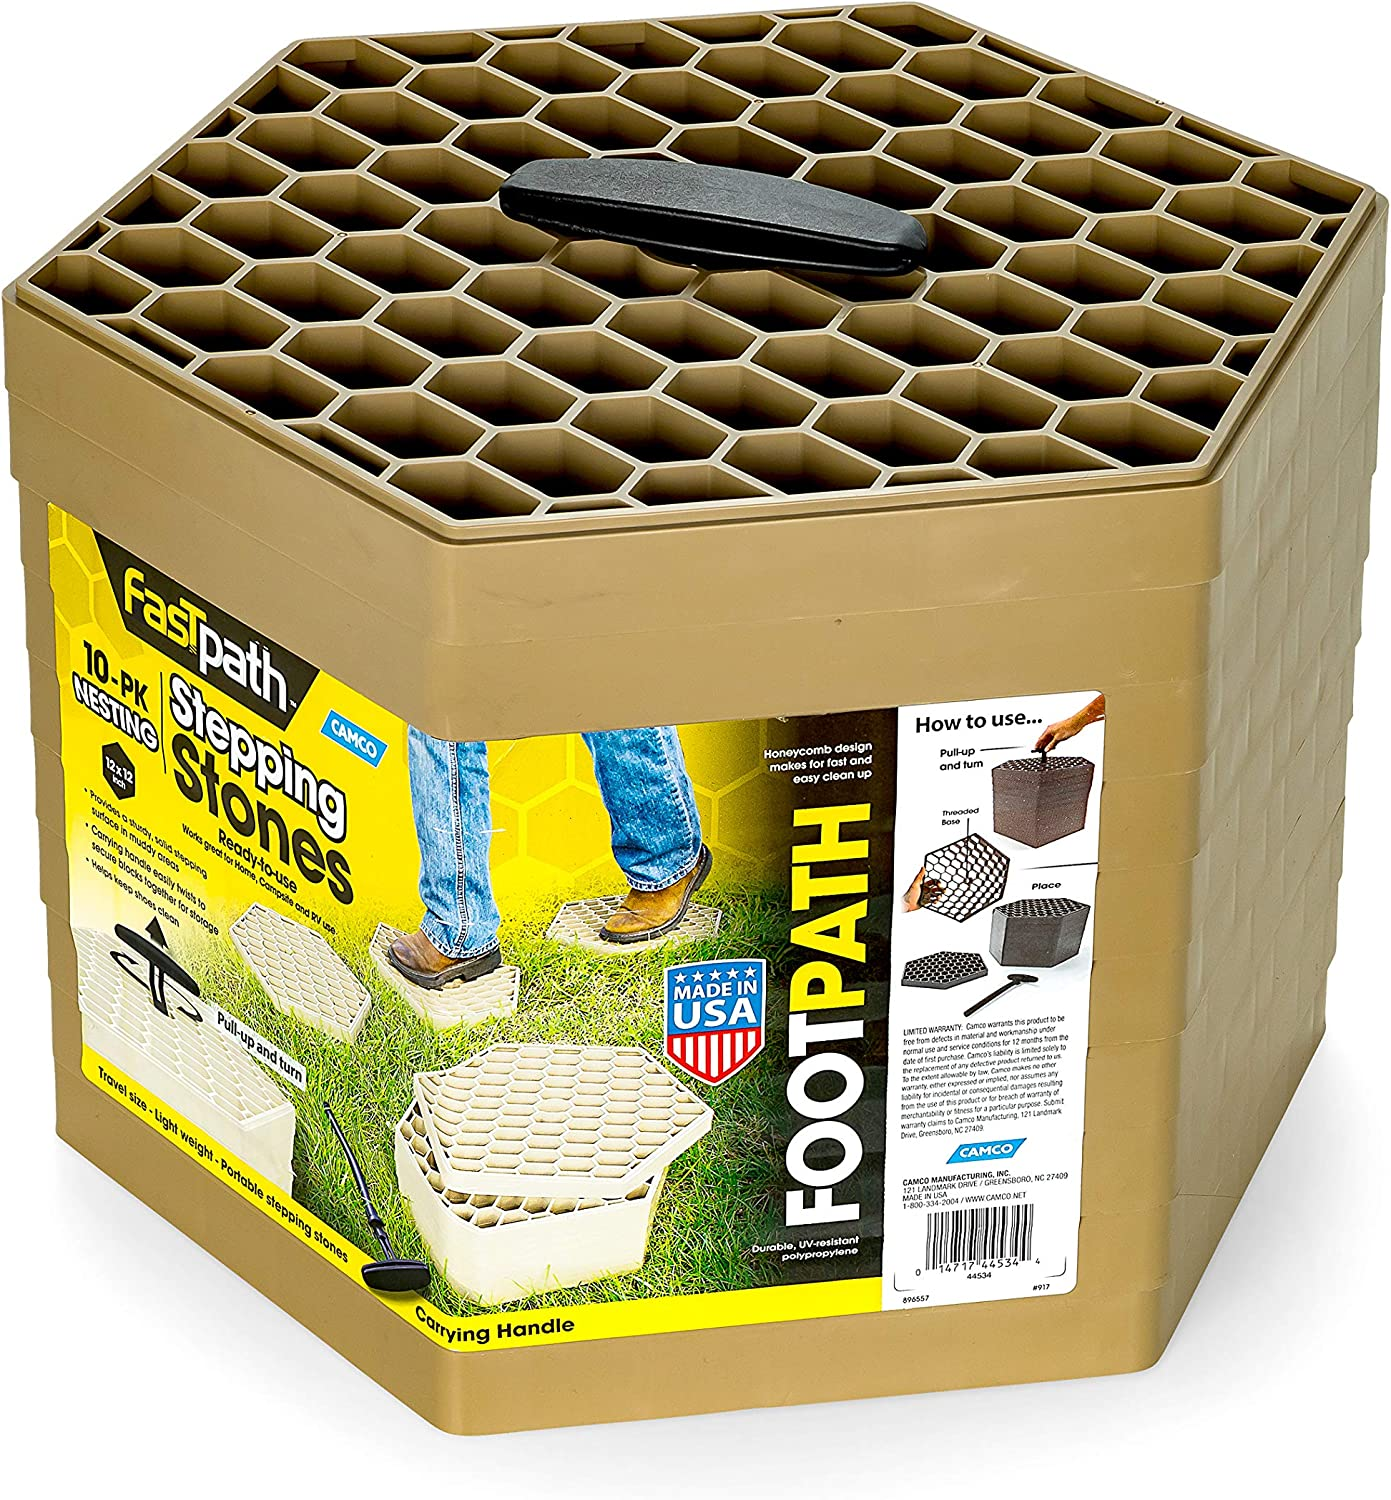 Amazon Com Camco 44534 Tan Fastpath Portable Stones Ideal For Providing A Solid Stepping Surface And Keeping Shoes Clean 10 Pack Automotive